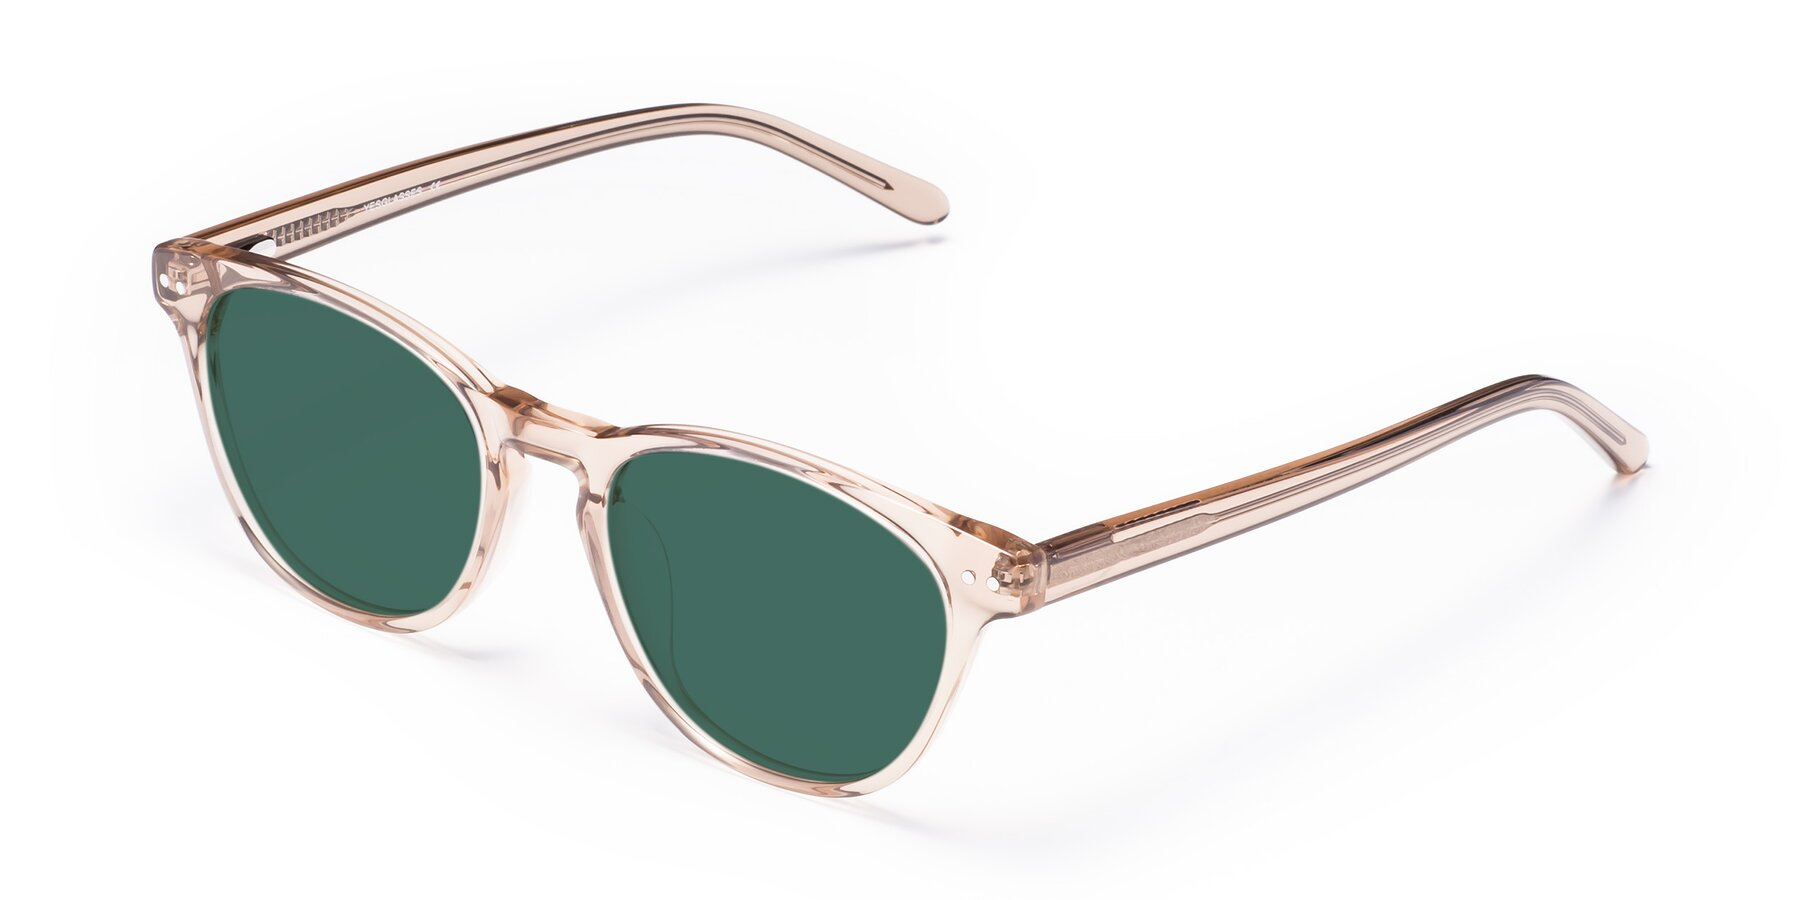 Angle of Blaze in light Brown with Green Polarized Lenses